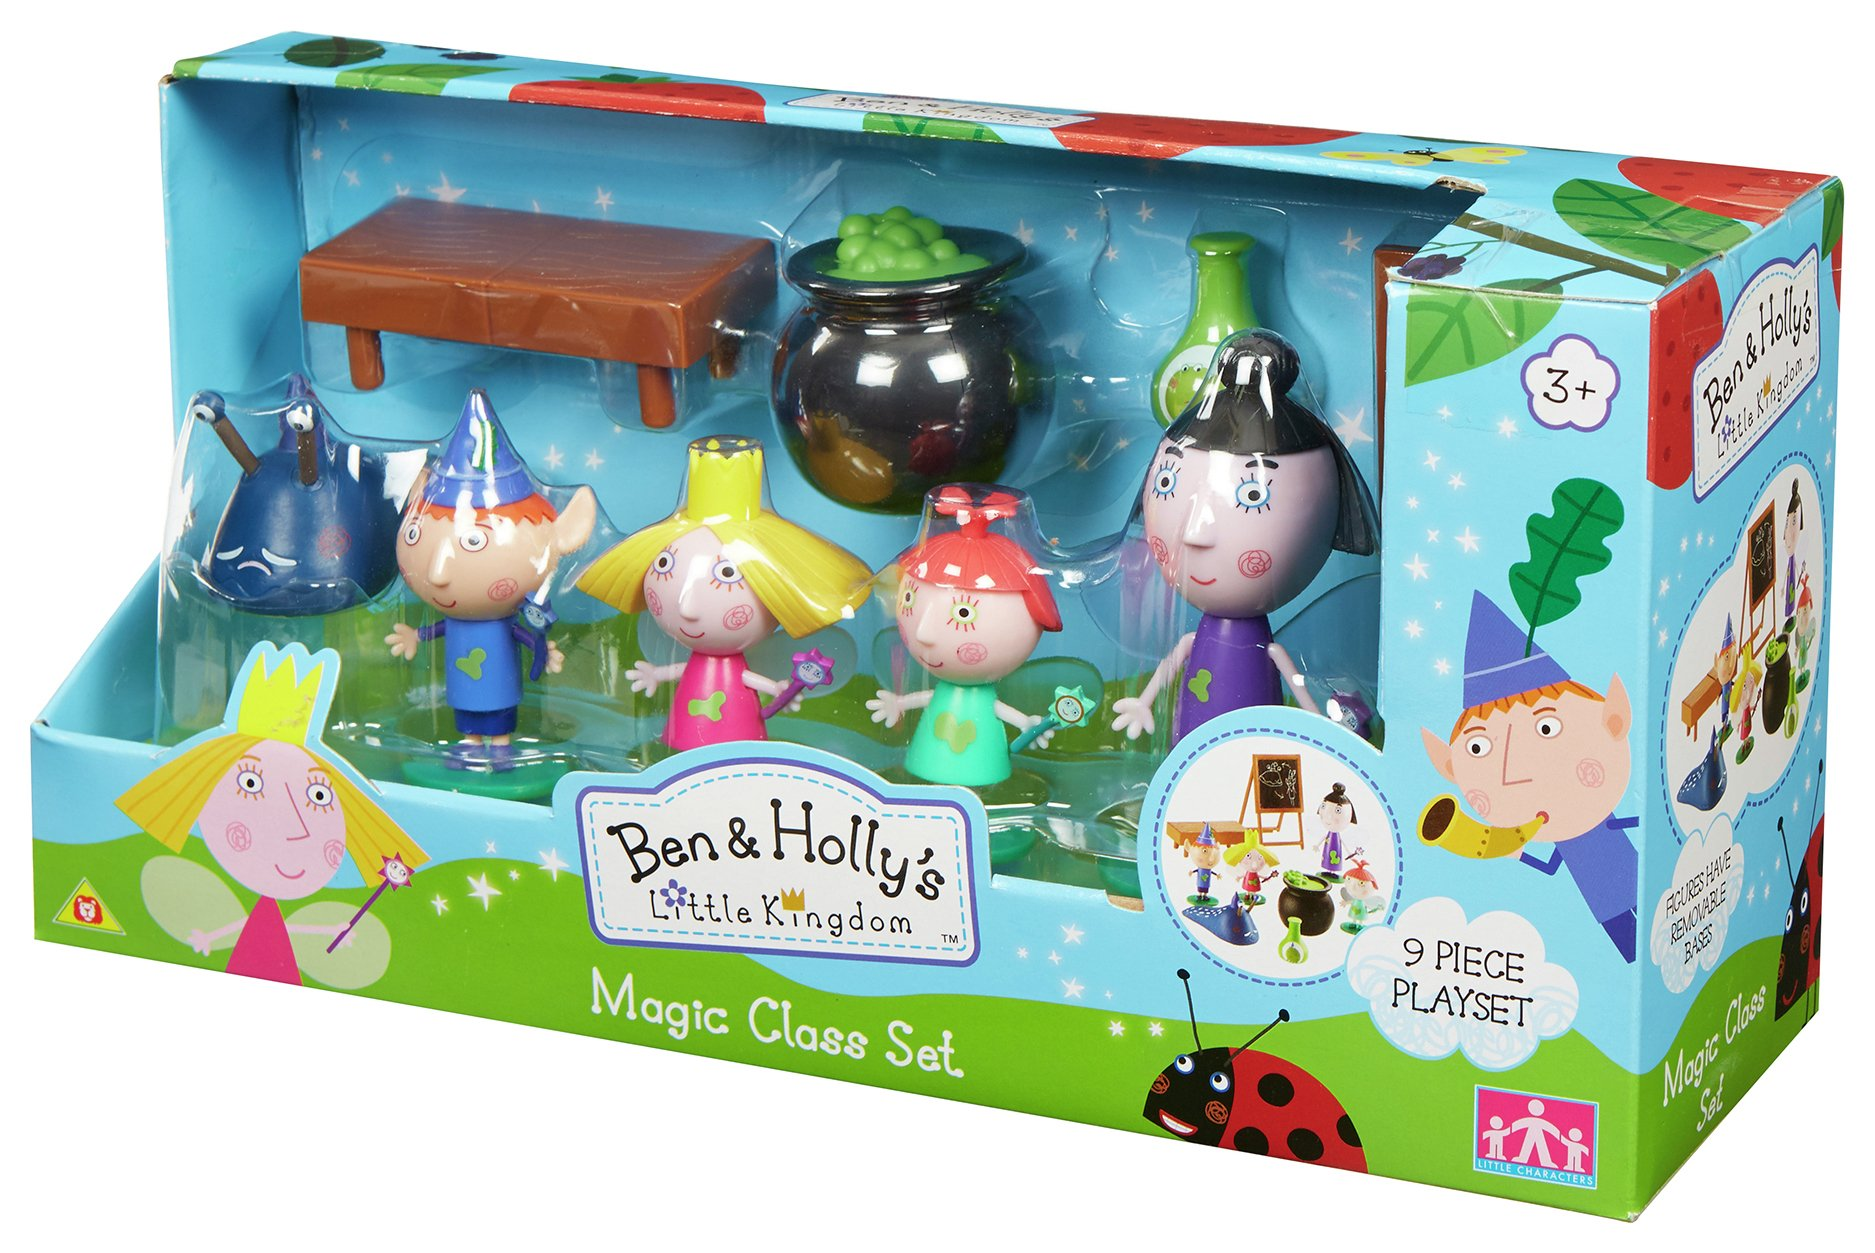 Image of Ben & Holly's Little Kingdom Magic Class Playset.